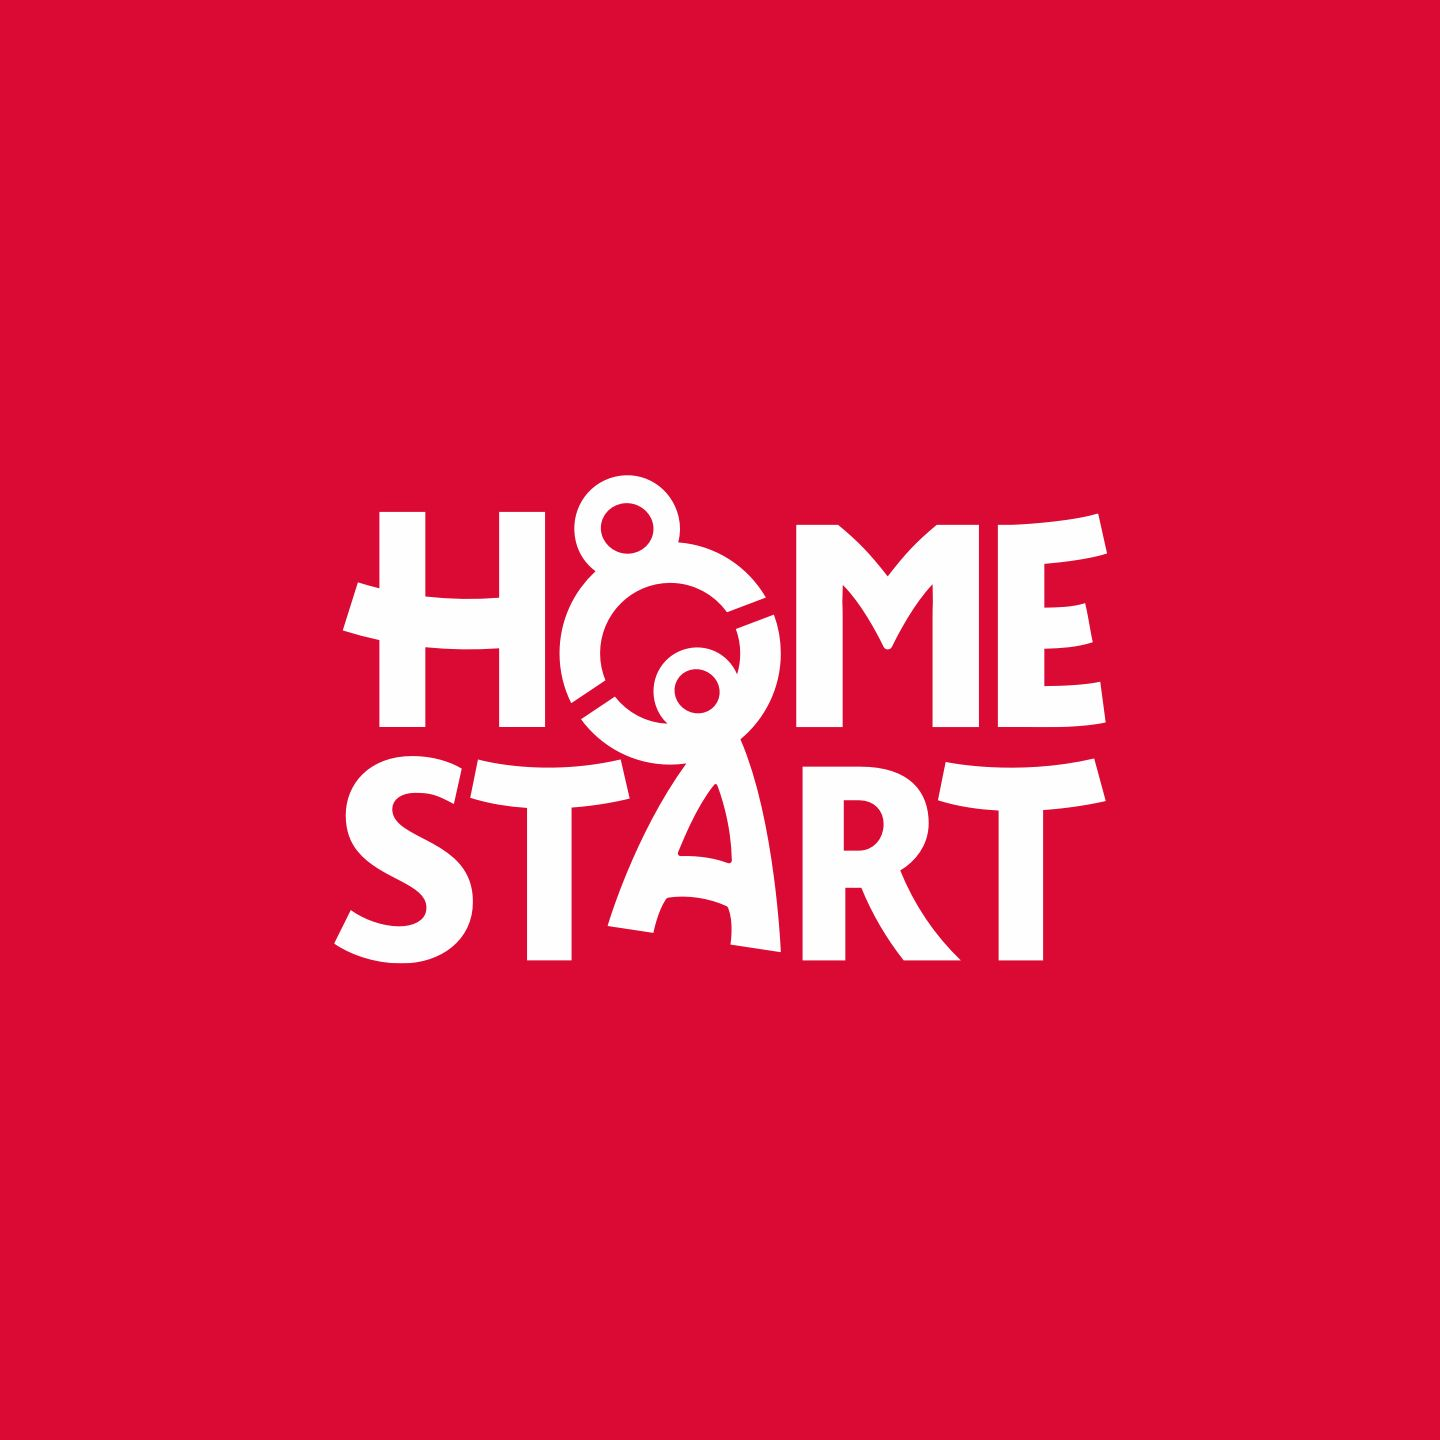 Home-Start Logo on red background